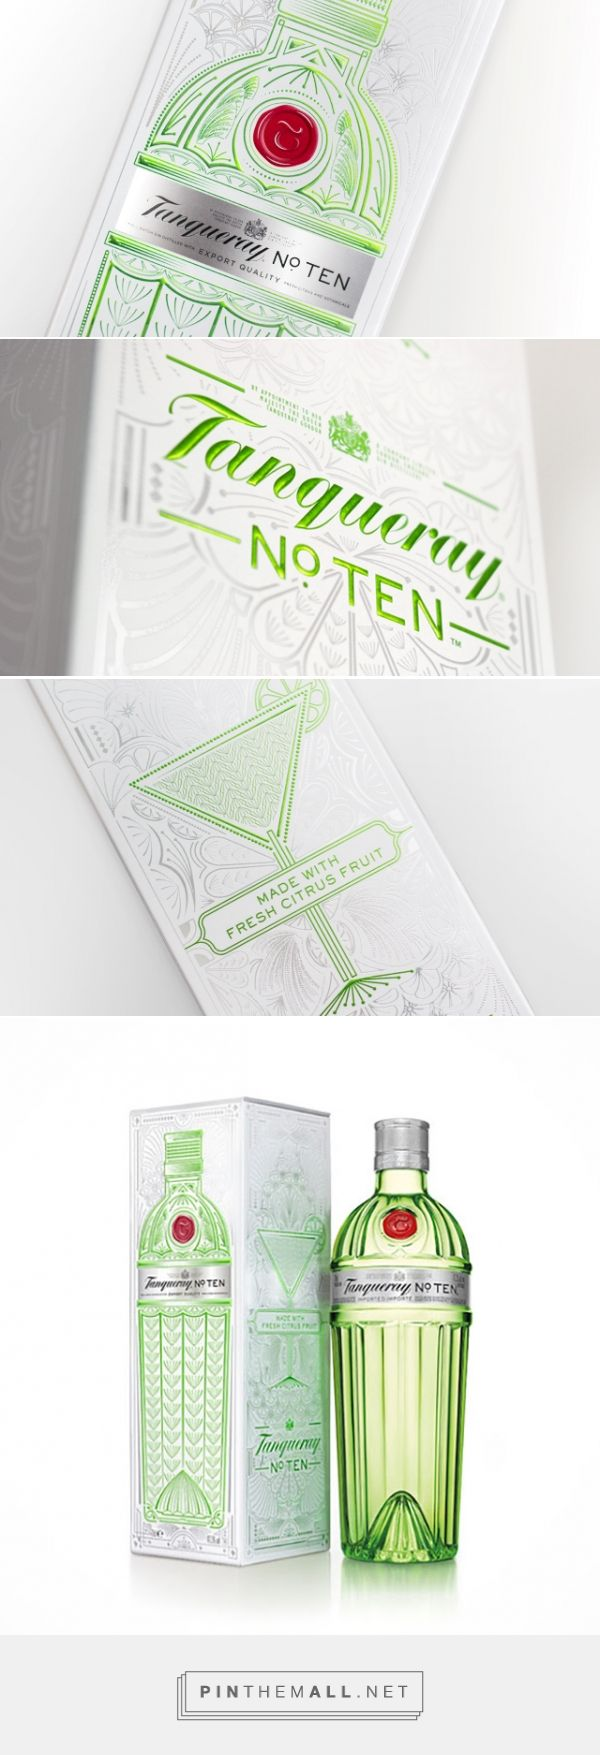 Tanqueray No. TEN Gin Gift Pack designed by ButterflyCannon - http://www.packagingoftheworld.com/2015/11/tanqueray-no-ten-gift-pack.html